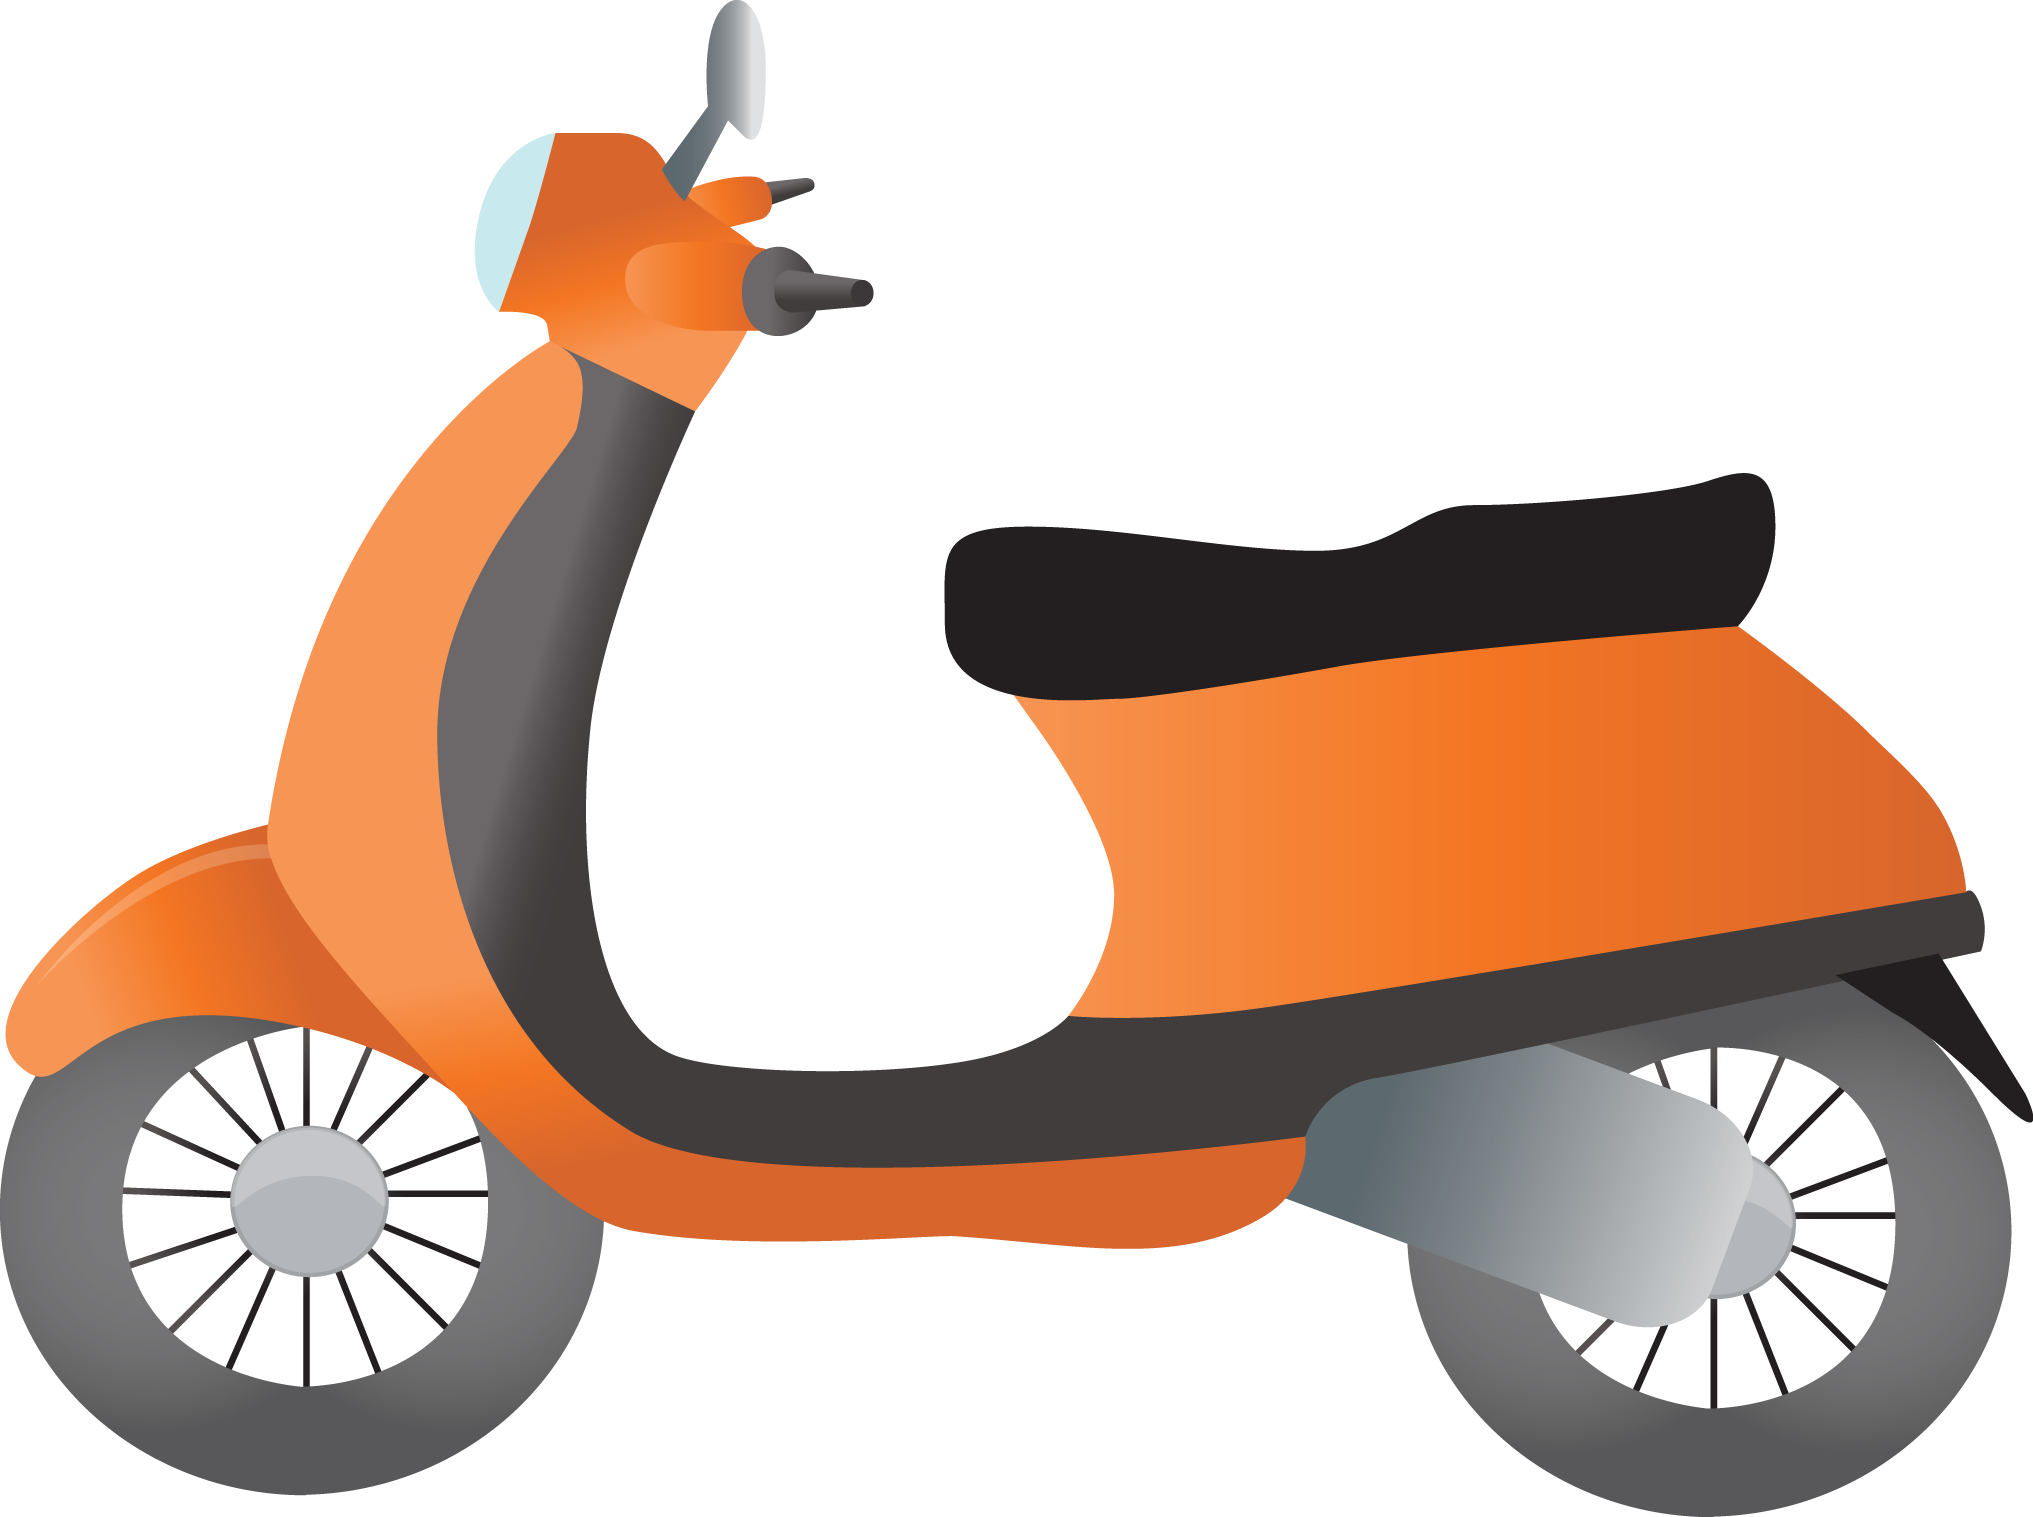 Scooter vector animated. Graphic transparent stock